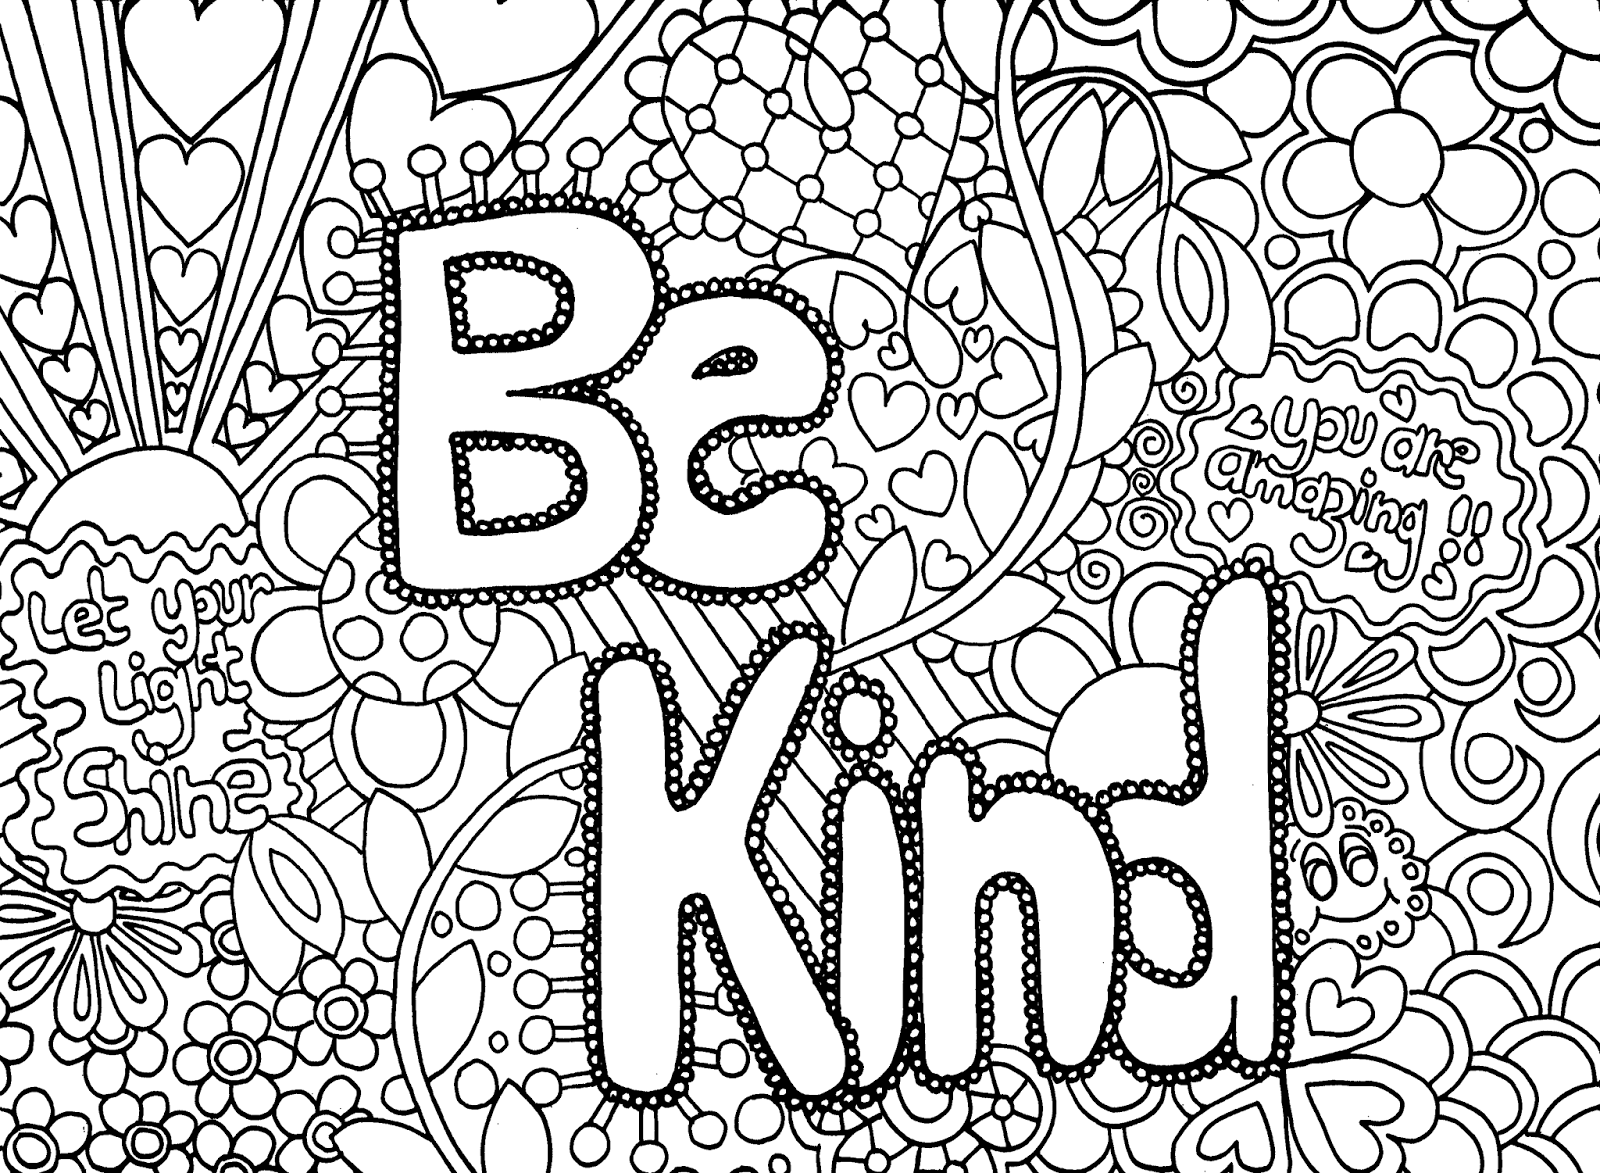 hard coloring pages for adults - Coloring Paages